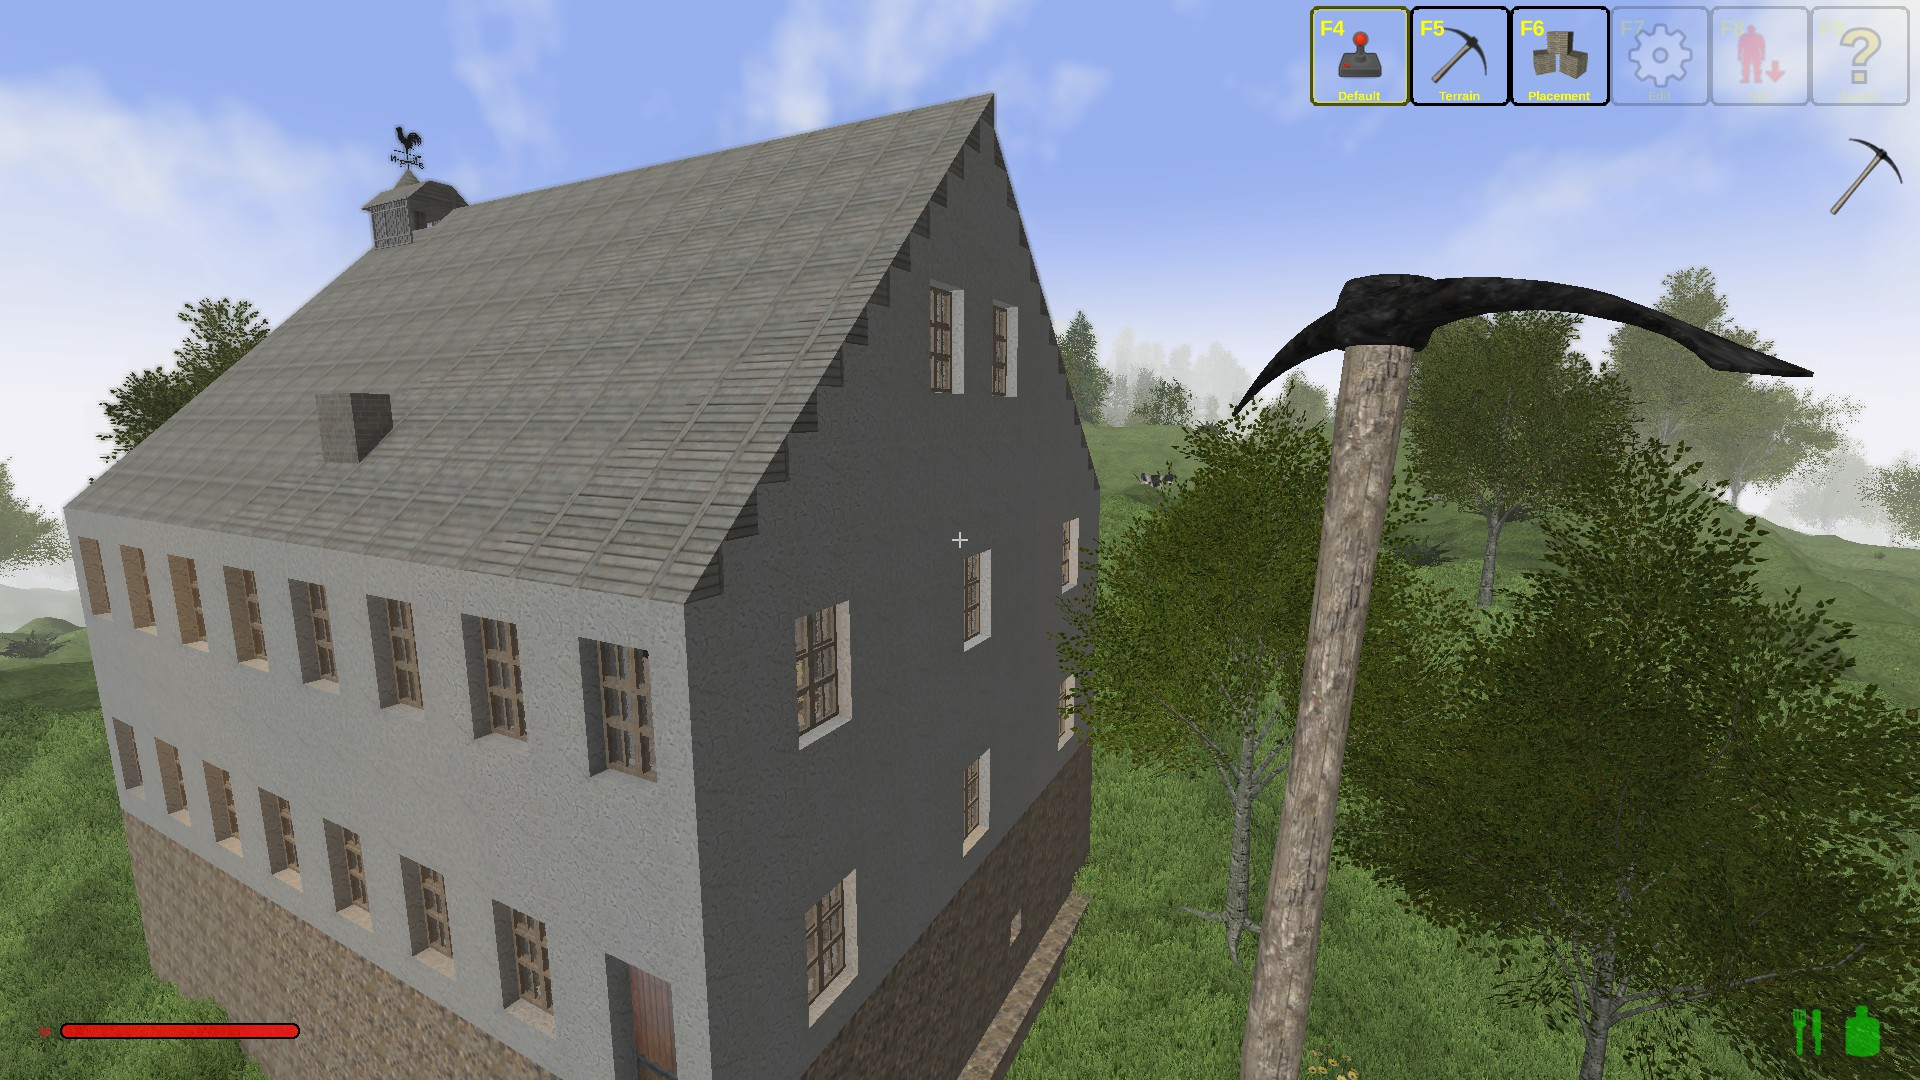 Water mill wassermhle redton various structures blueprints roofs doors automation tool suggestions npcs servers brick suggestions image includes items inside it hope you guys enjoy malvernweather Images